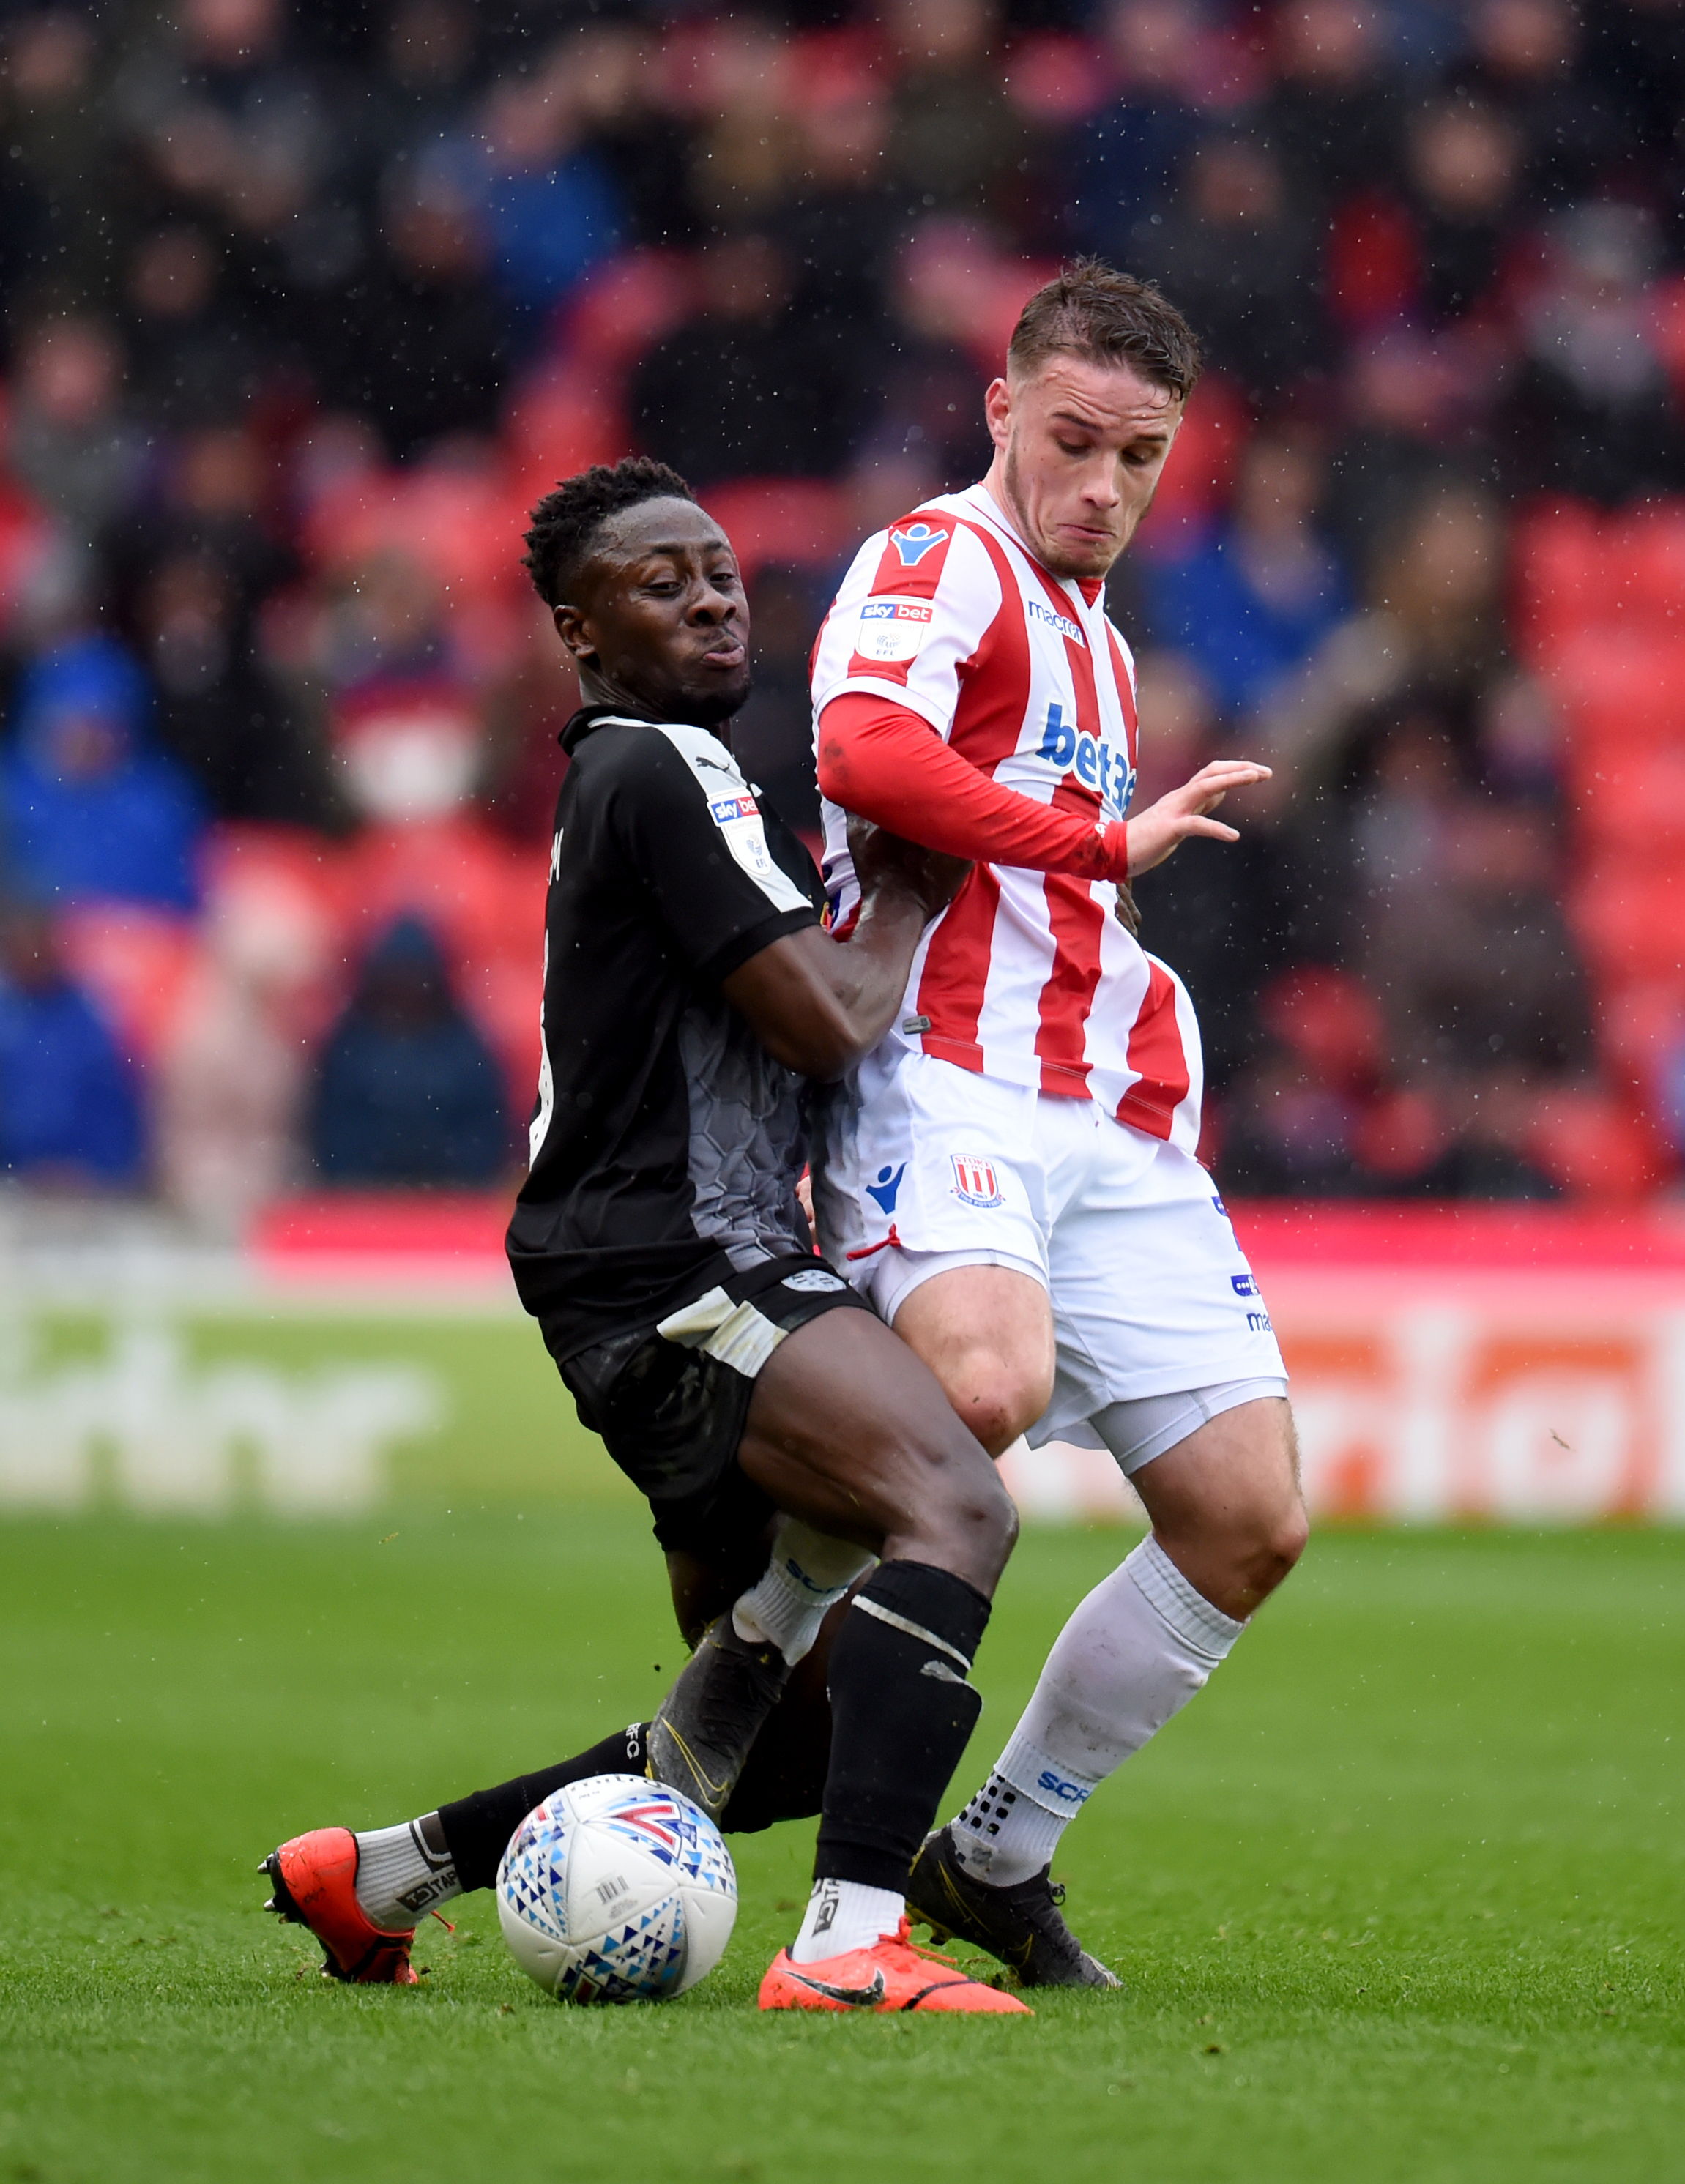 Stoke City 0-0 Reading FC: A Solid Point On The Road